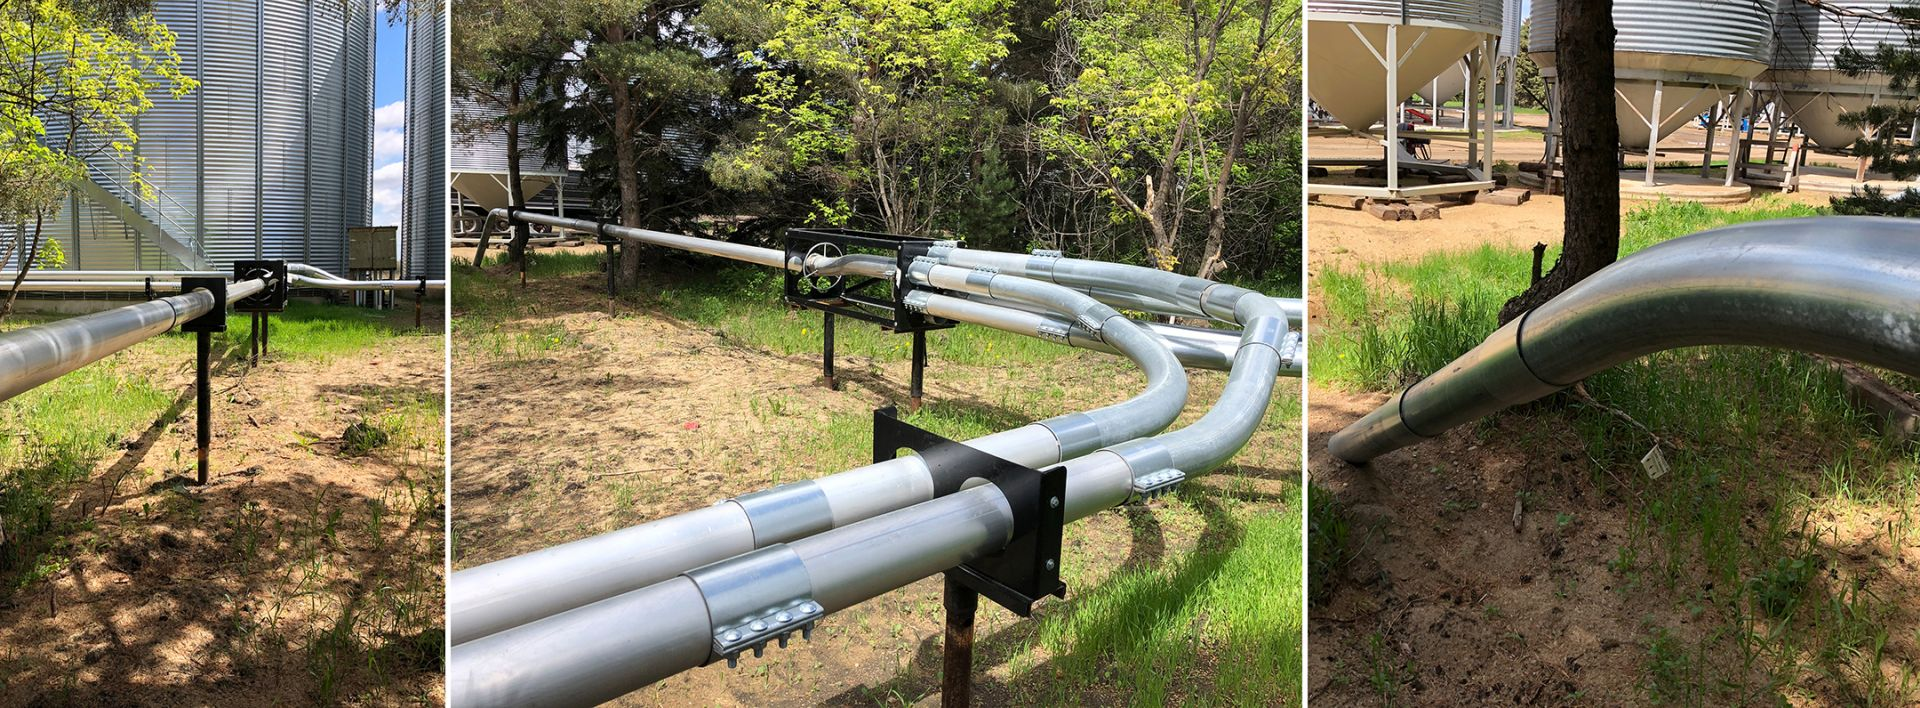 Walinga Blower system pipes